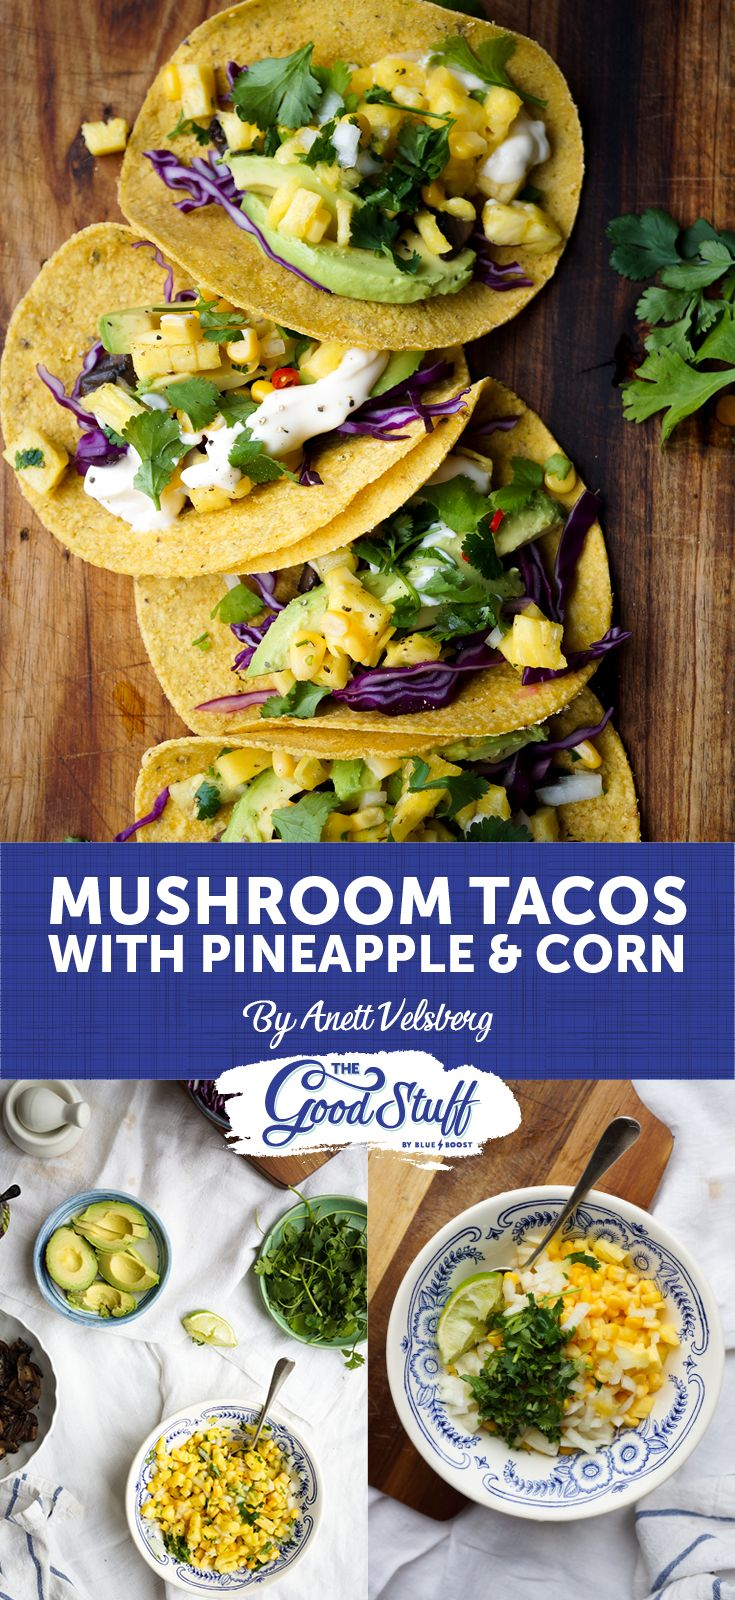 Mushroom Tacos with a Pineapple & Corn Salsa – a vegan twist on an old classic, and the salsa is to DIE for!  #Tacos #Mushroom #Pineapple #Corn #Recipe #Blog #BlueboostSA #TheGoodStuff